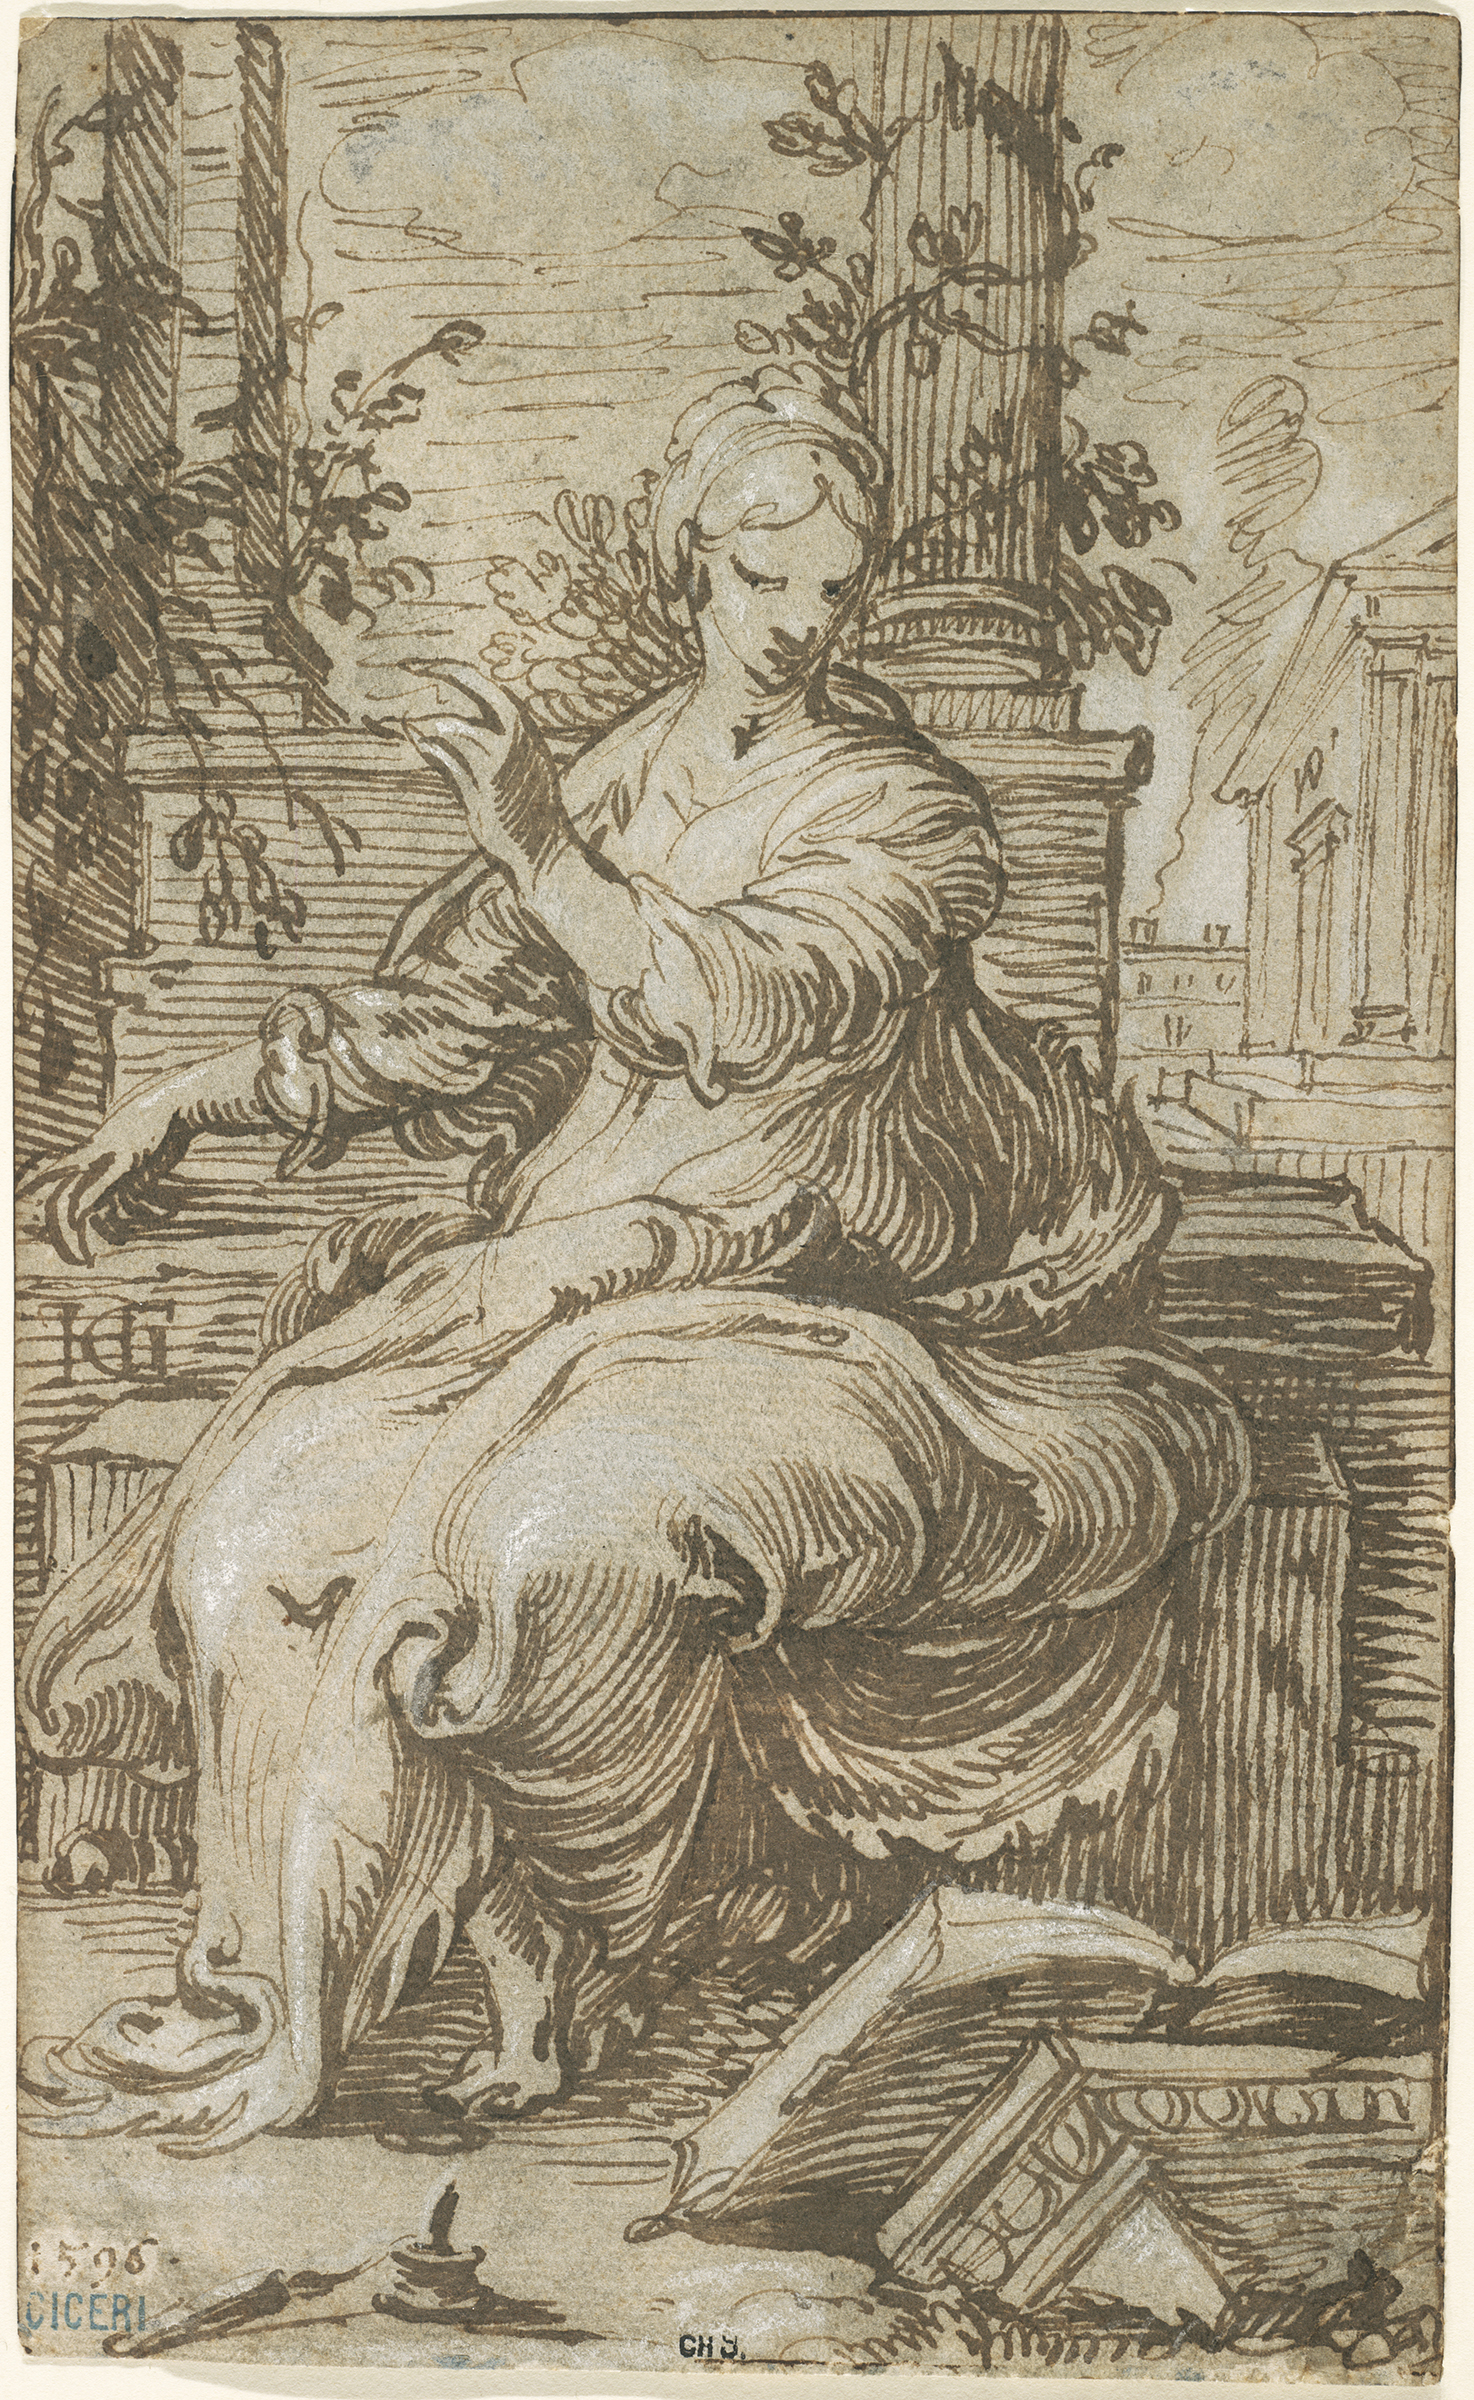 Hendrick Goltzius, Seated Woman, 1596. Brown and black ink and white opaque watercolor. The Maida and George Abrams Collection, Boston, Massachusetts. Photo: © President and Fellows of Harvard College.